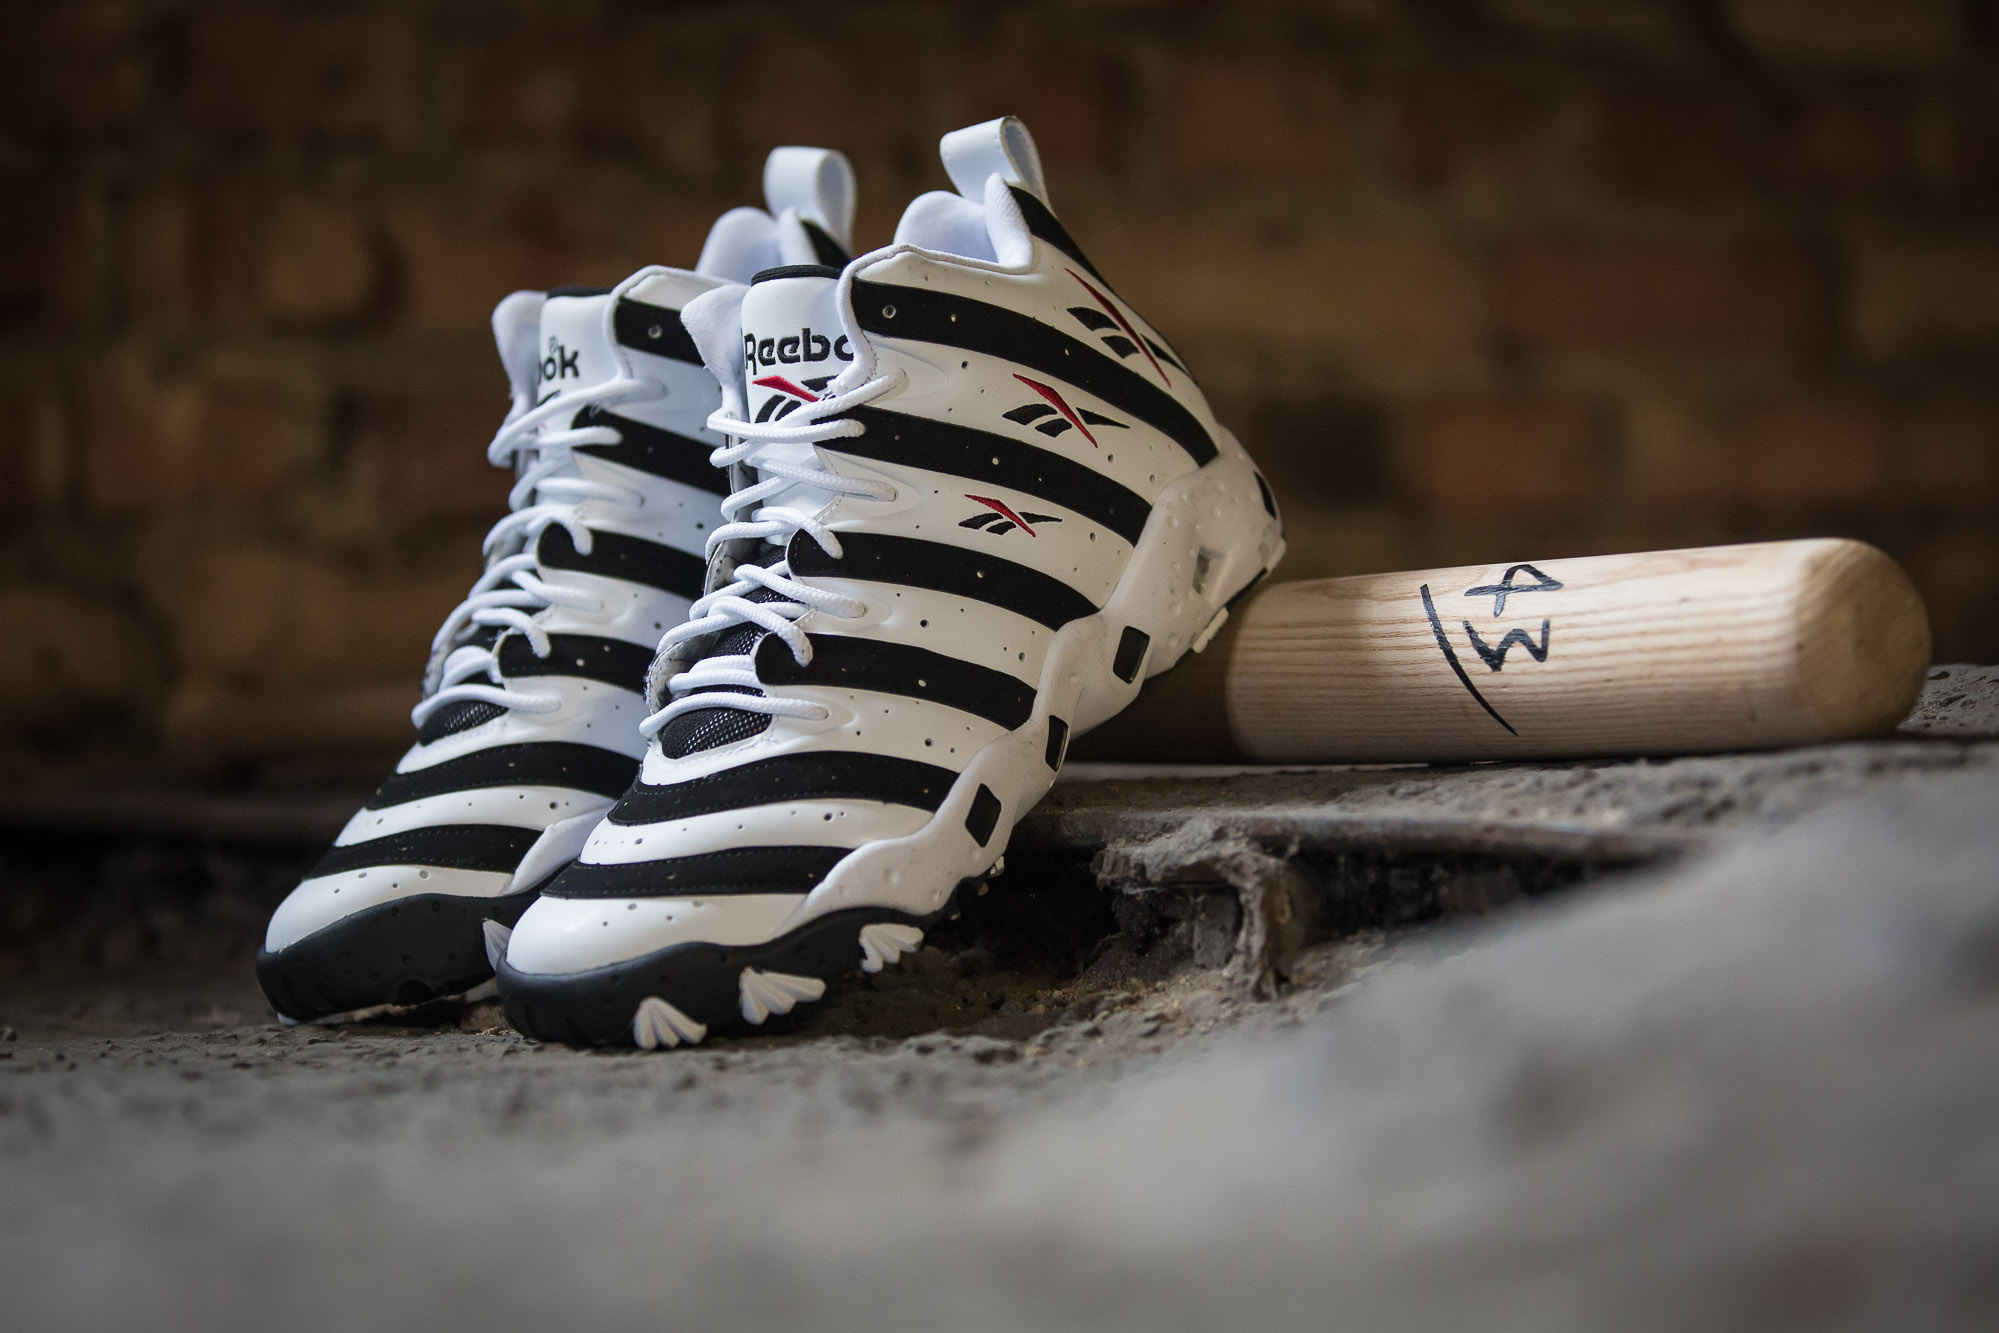 Reebok Big Hurt White Black 3